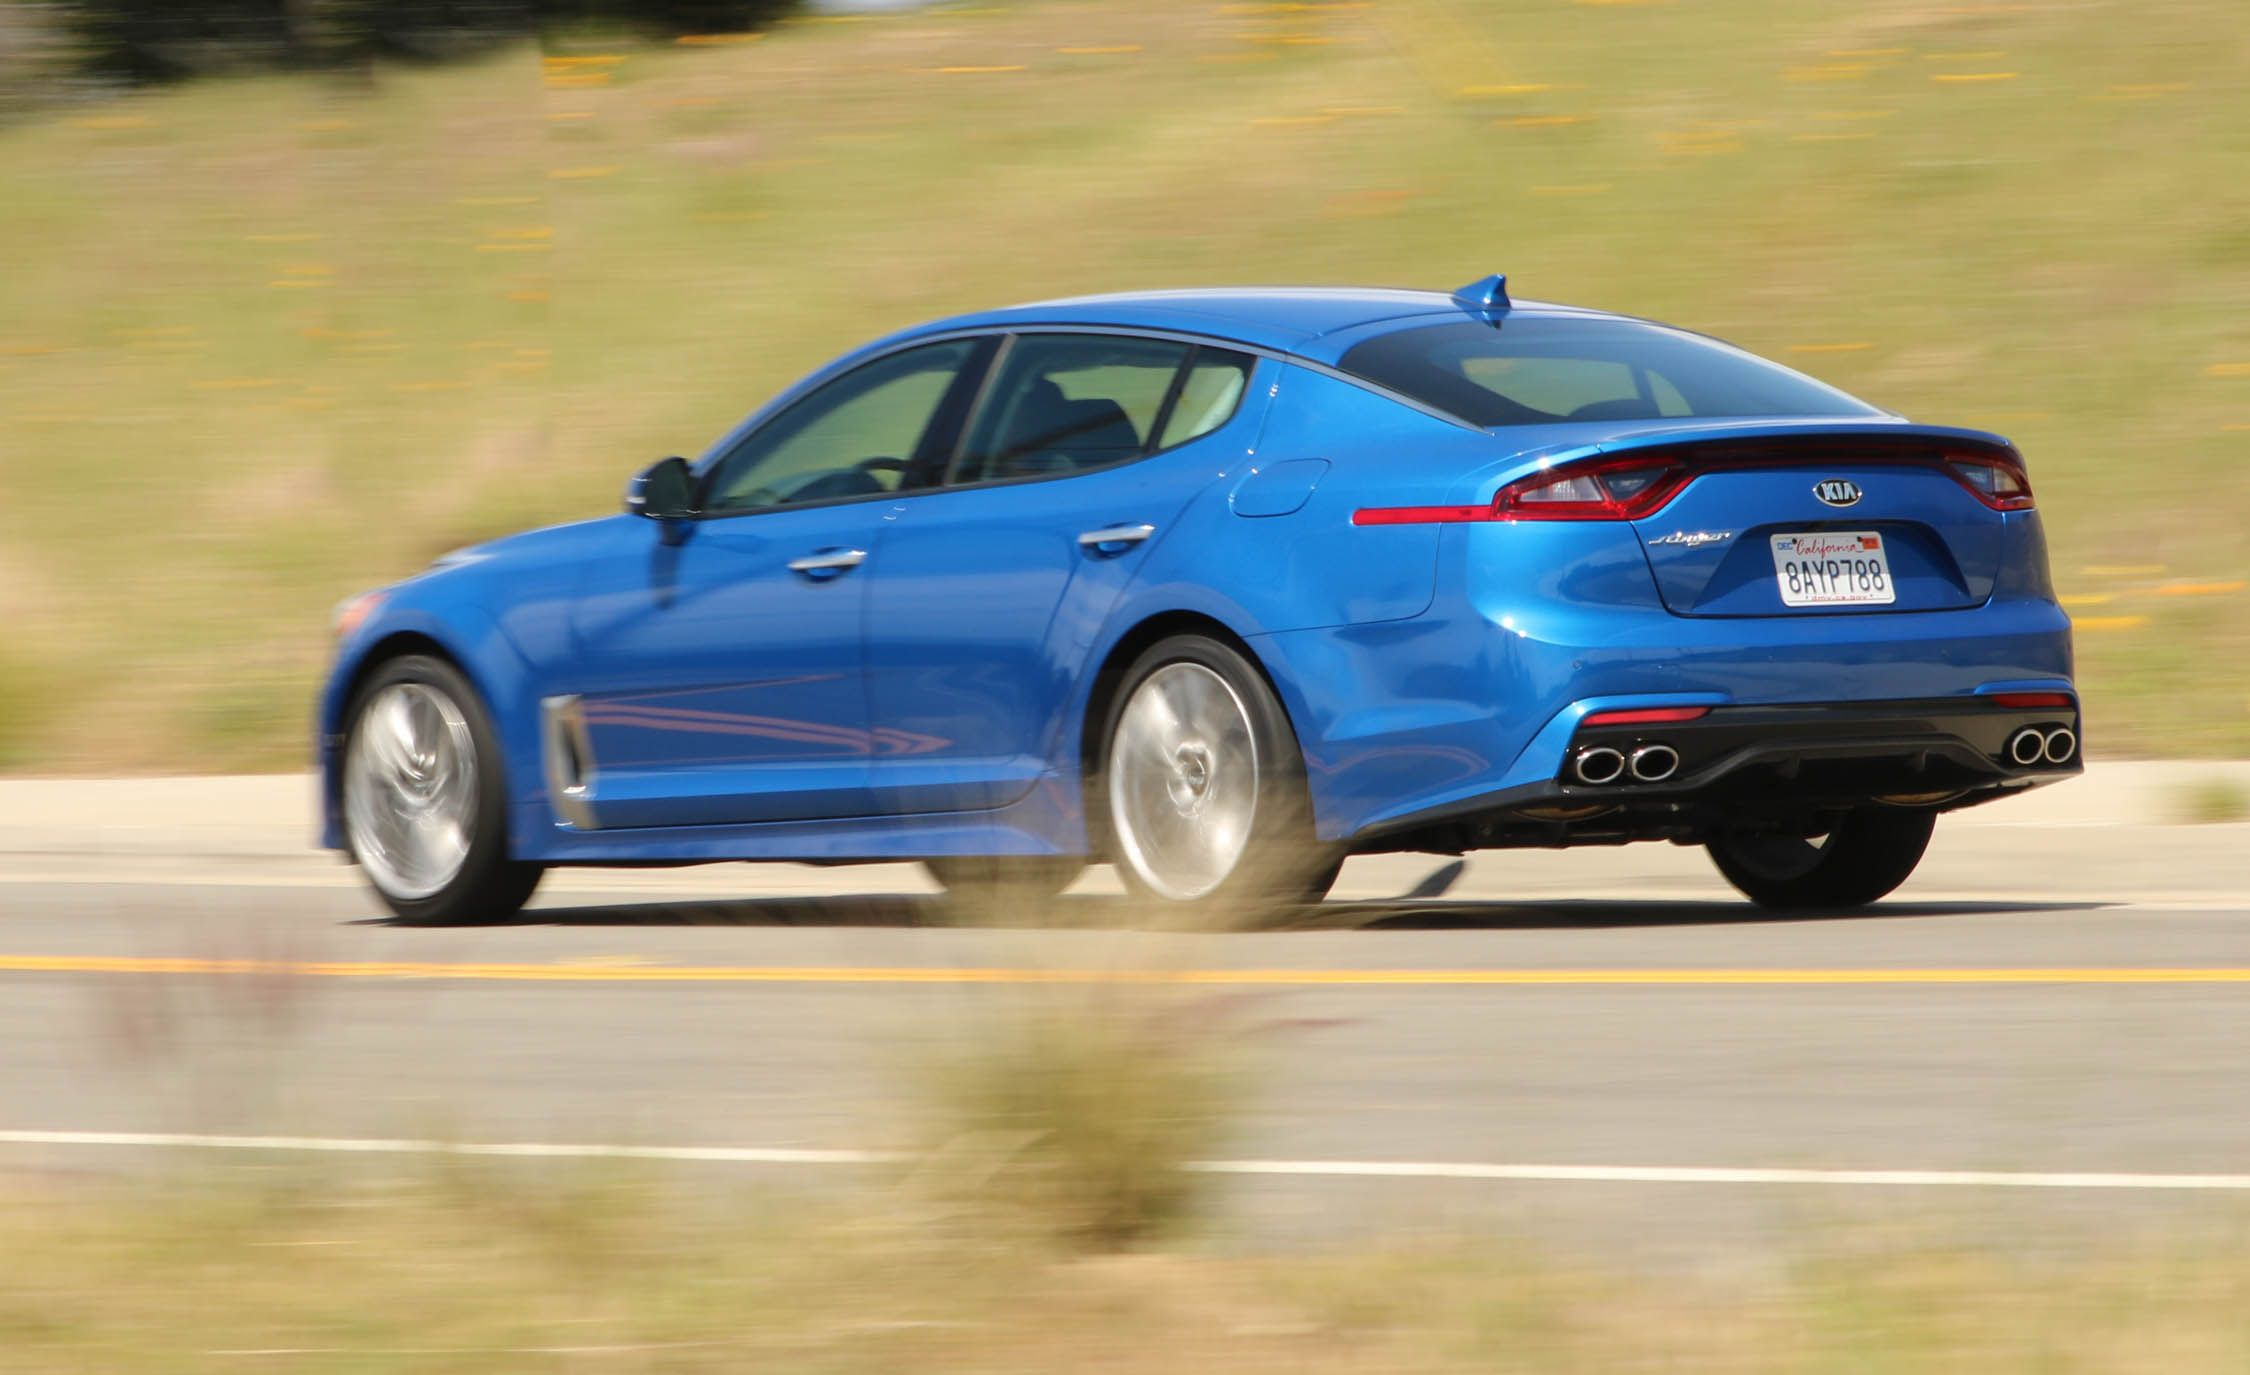 2018 Kia Stinger 2 0t Rwd Test The Korean Mustang News Car And